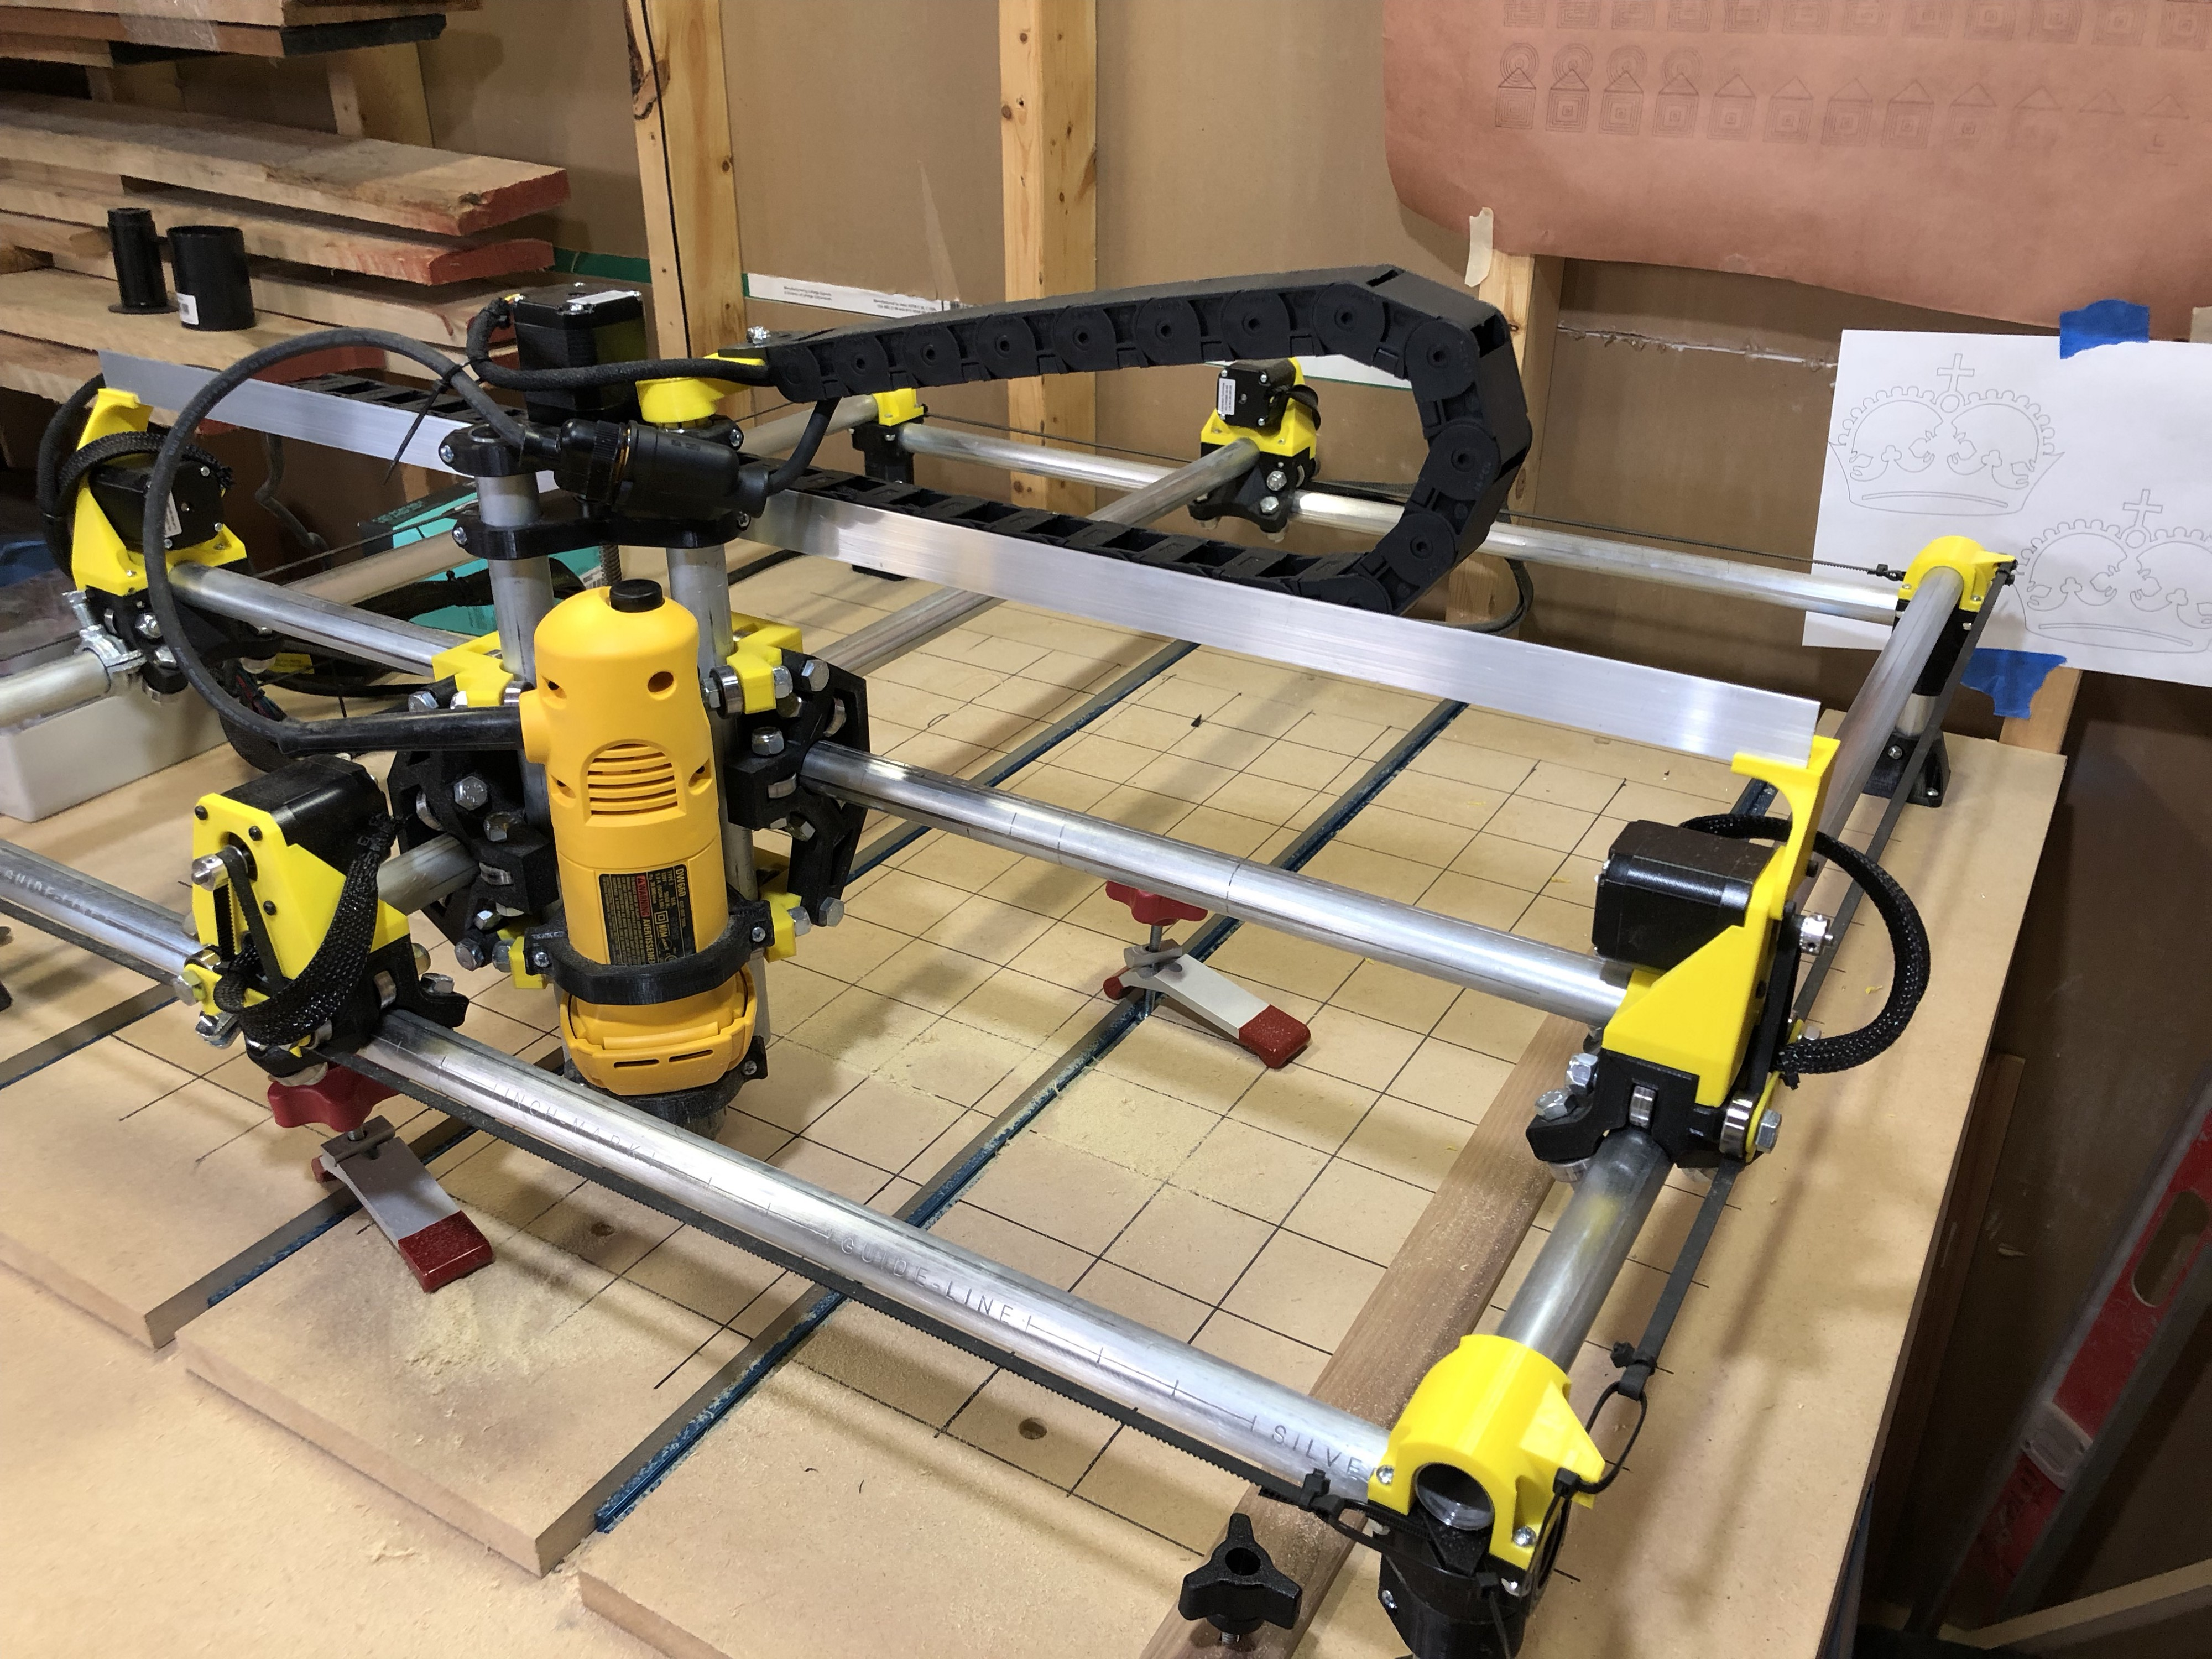 Mpcnc From The Beginning My Son Knew I Was Looking To Buy A Cnc By Tom Will Medium